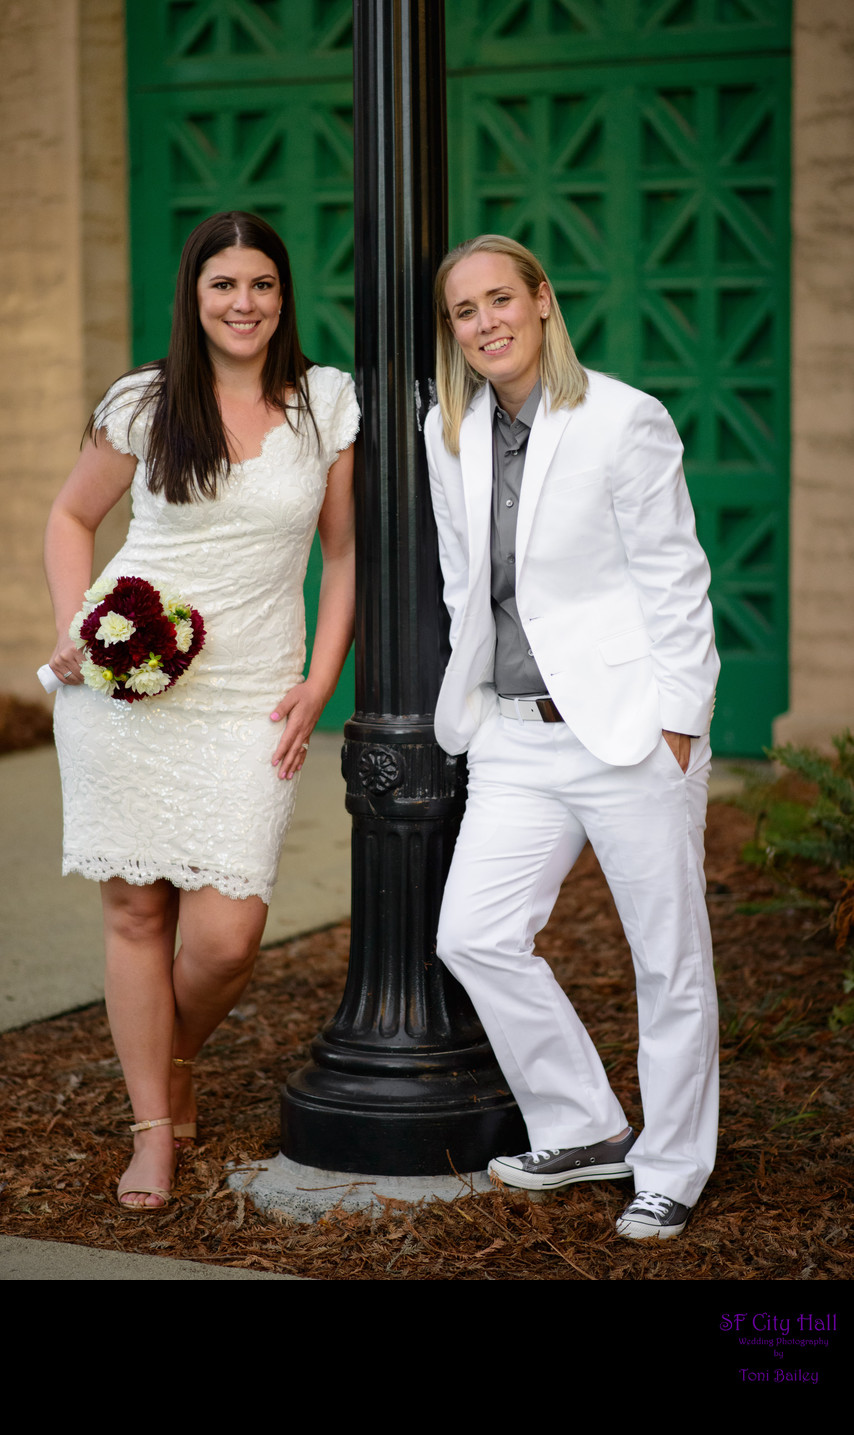 palace of fine art lgbtq wedding